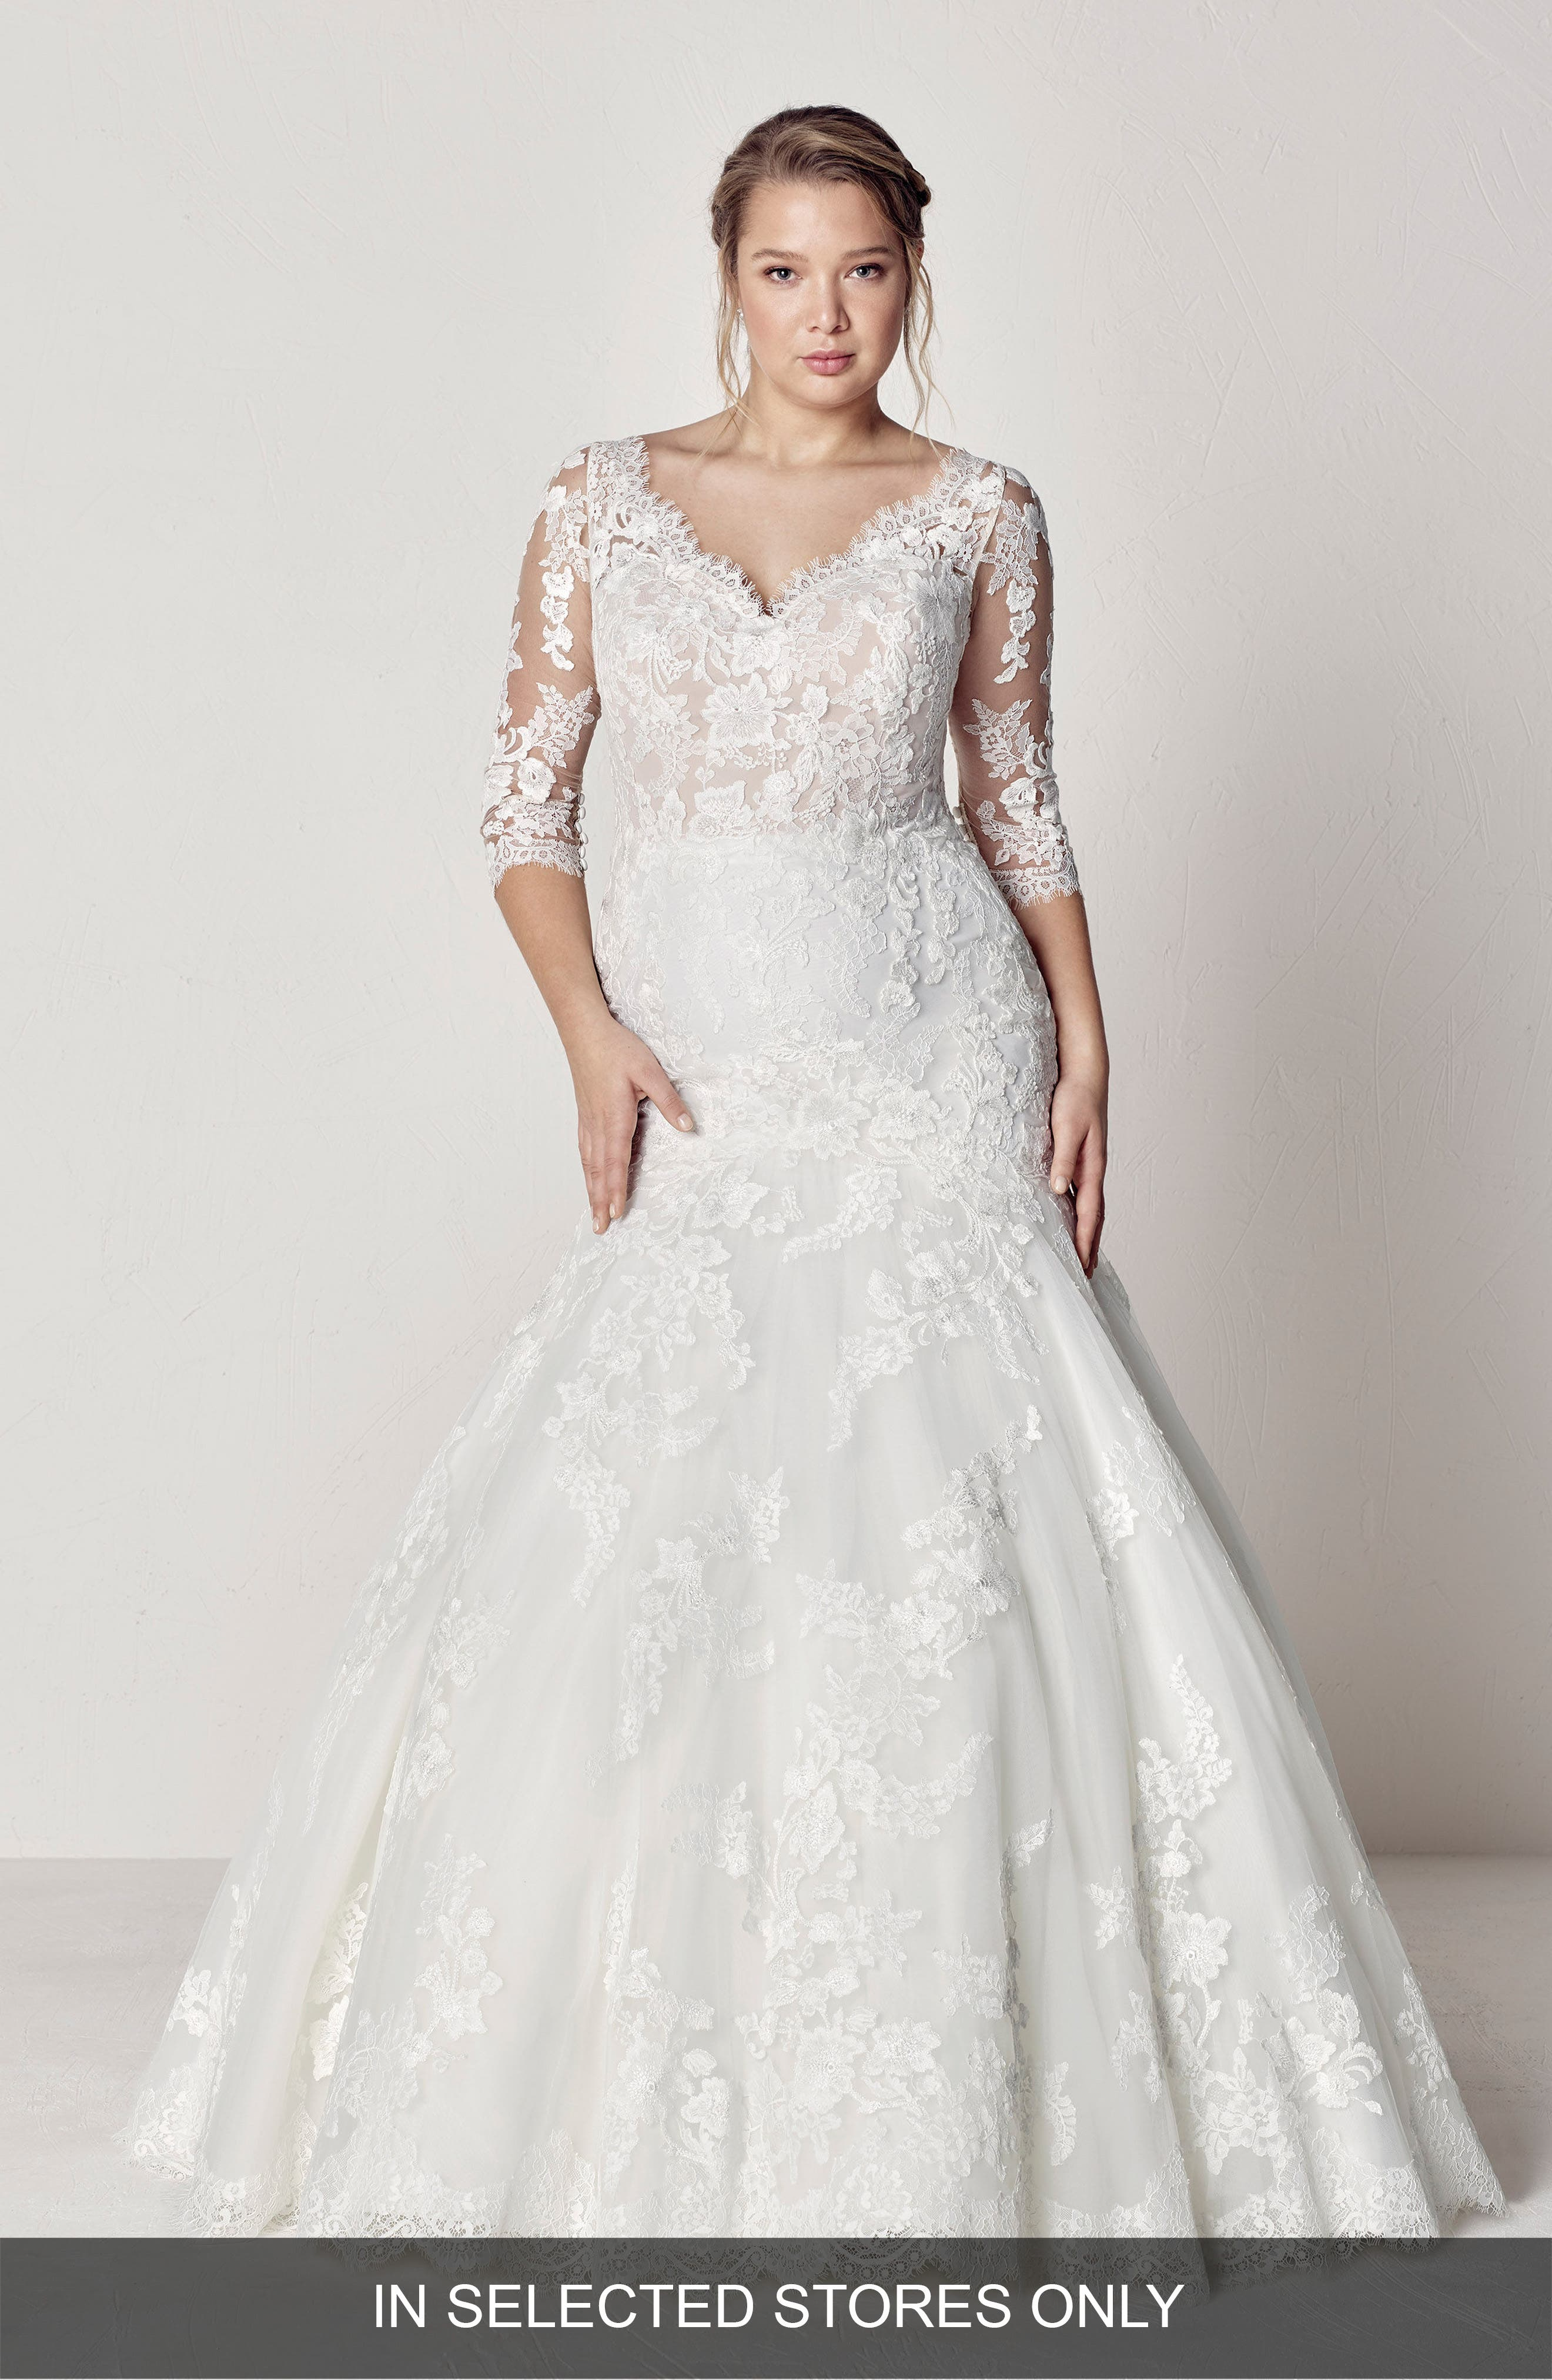 Evelyn Lace Mermaid Gown,                             Main thumbnail 1, color,                             OFF WHITE/ CRST/ ND